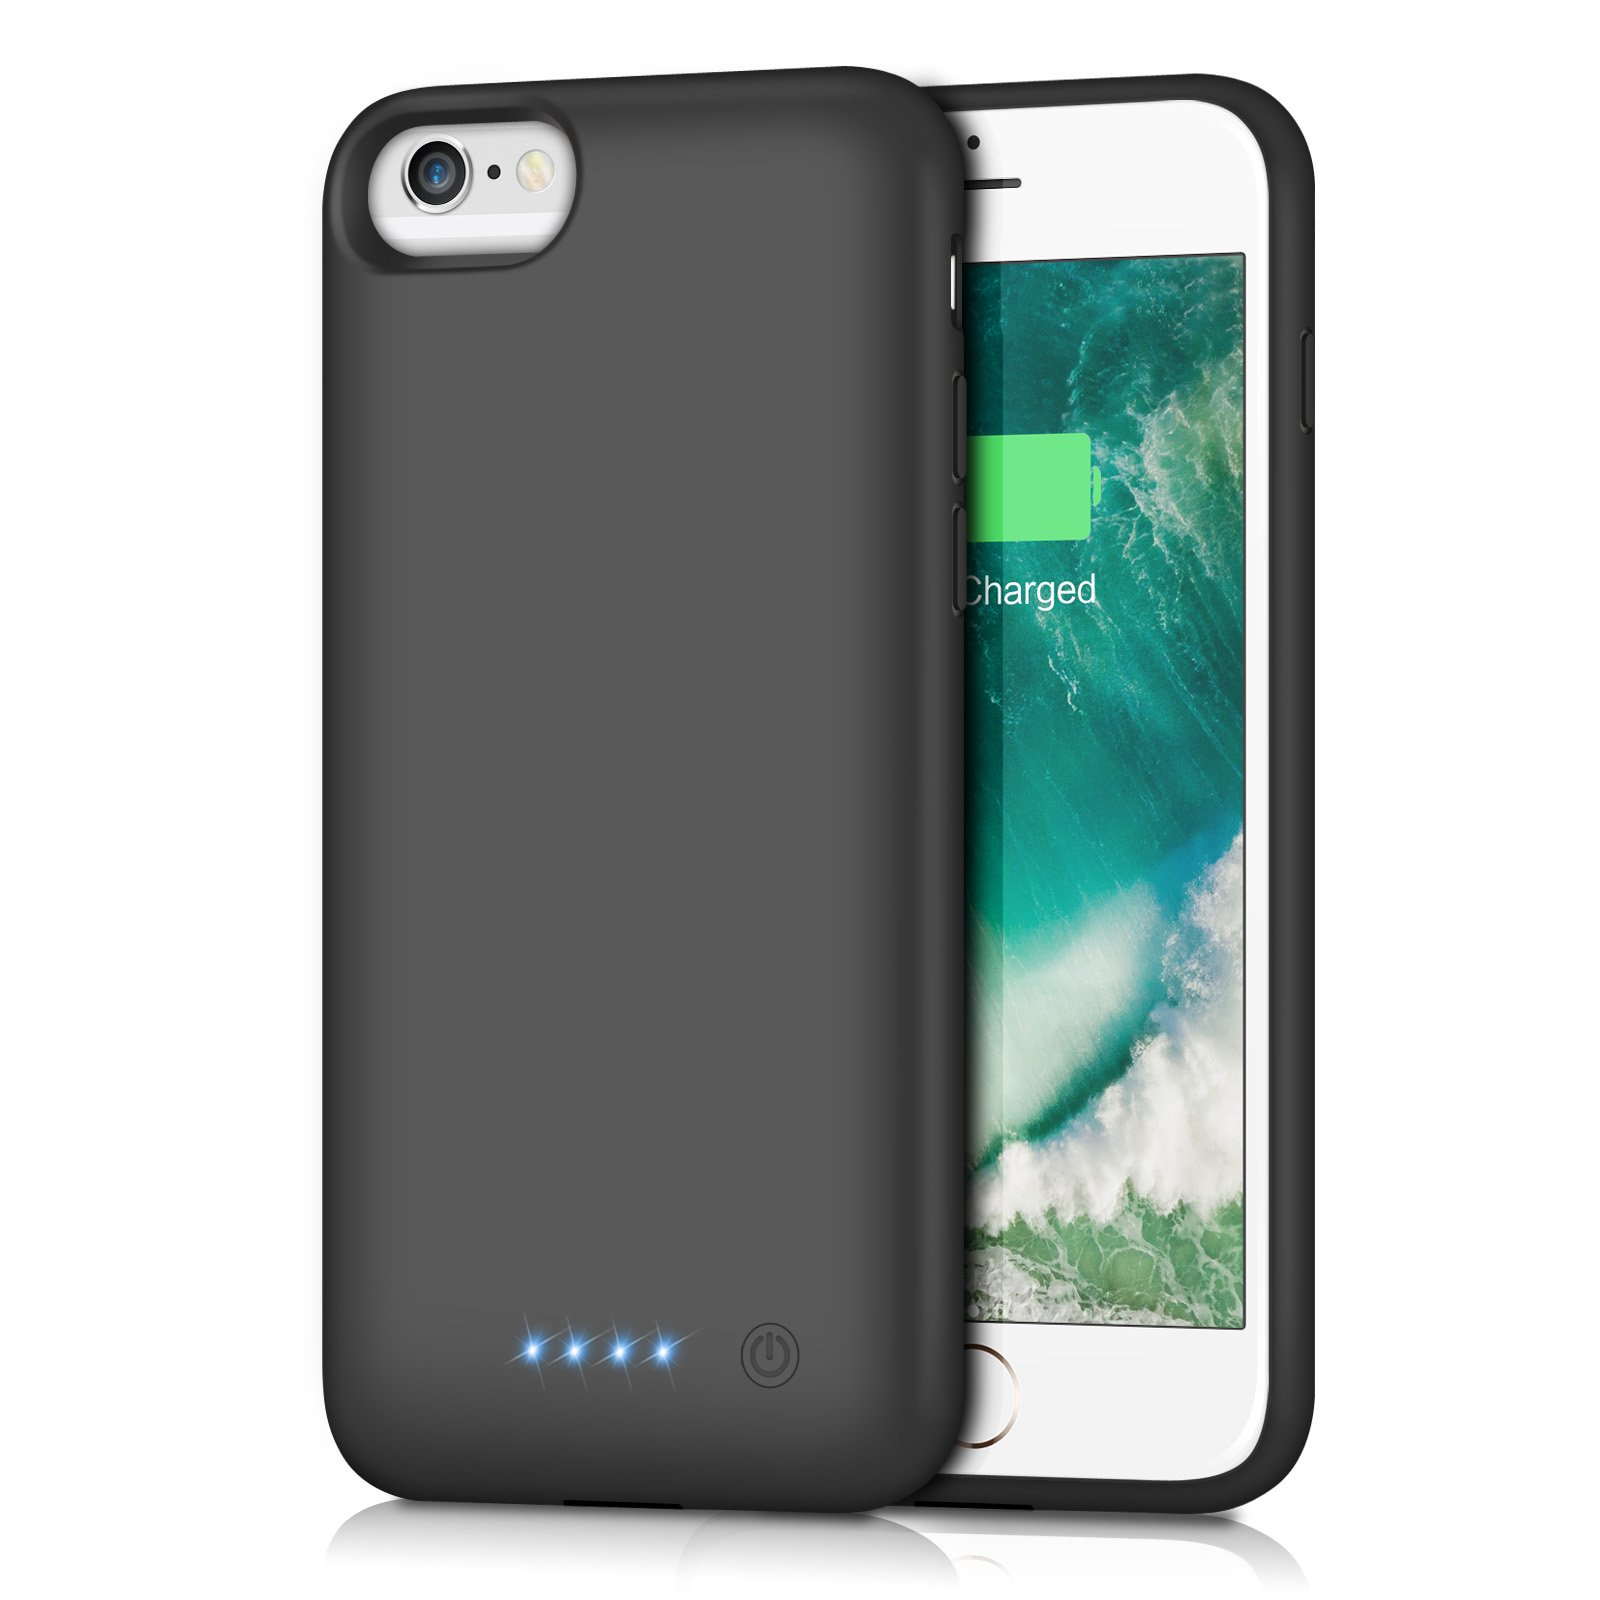 iPhone 6S / 6 Battery Case [6000mAh] Capacity, Gixvdcu Rechargeable Portable Protective Charger for Apple iPhone 6&6S (4.7 Inch) Extended Charging Case Pack Power Bank - Black